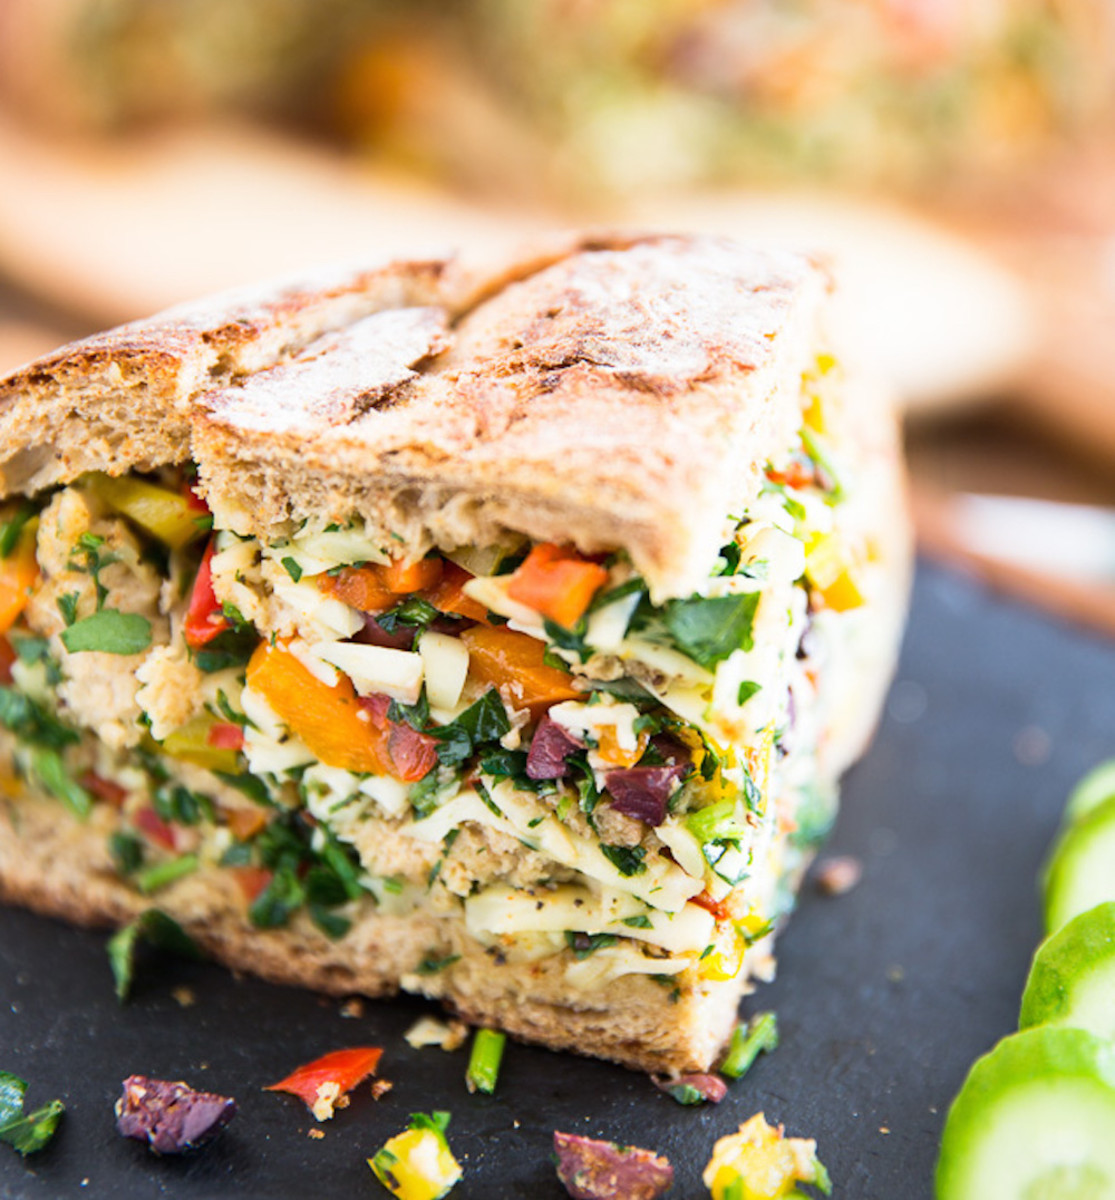 4 Gourmet Vegetarian Sandwiches for Meatless Monday